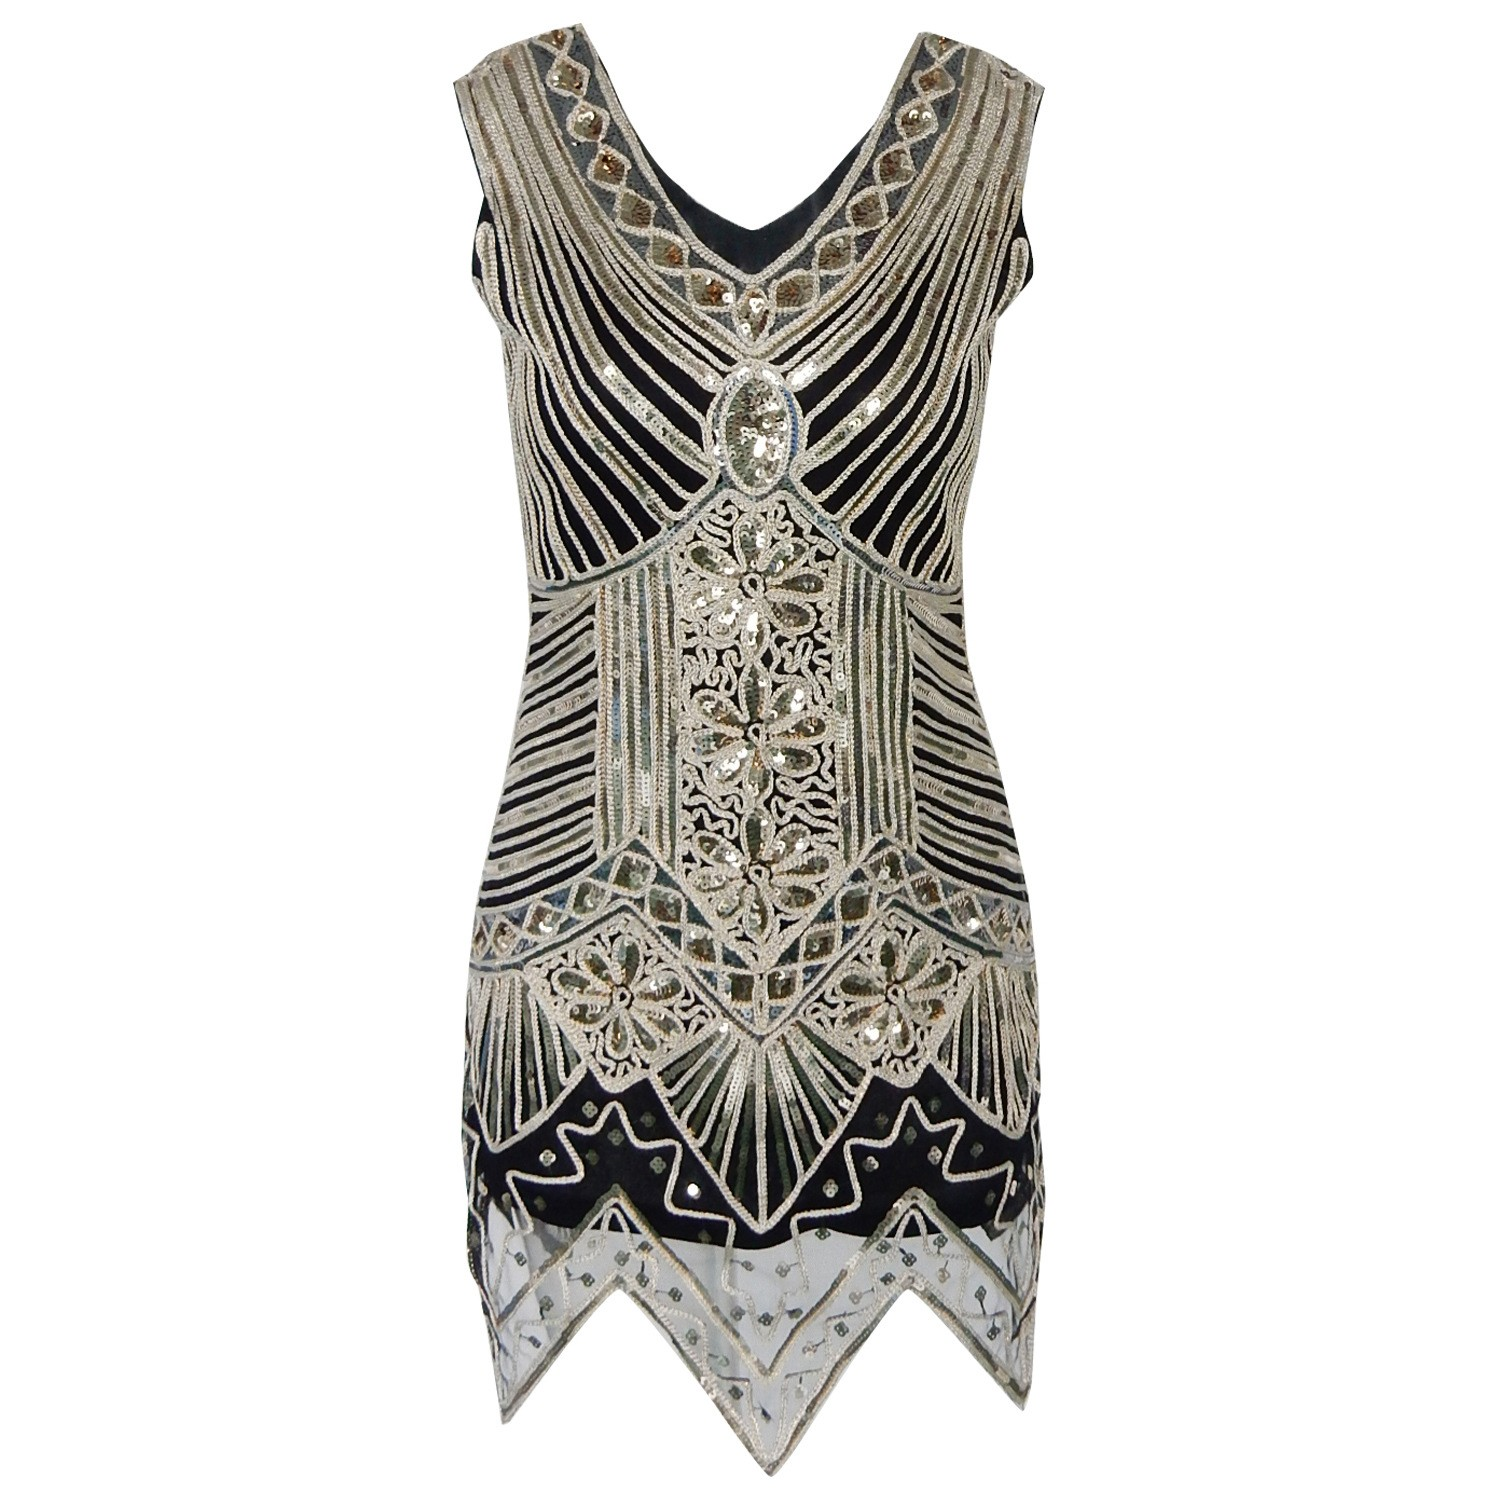 White Women's 1920S Embellished Glam Inspired Beaded Cocktail Flapper Gatsby Dress SN006-White